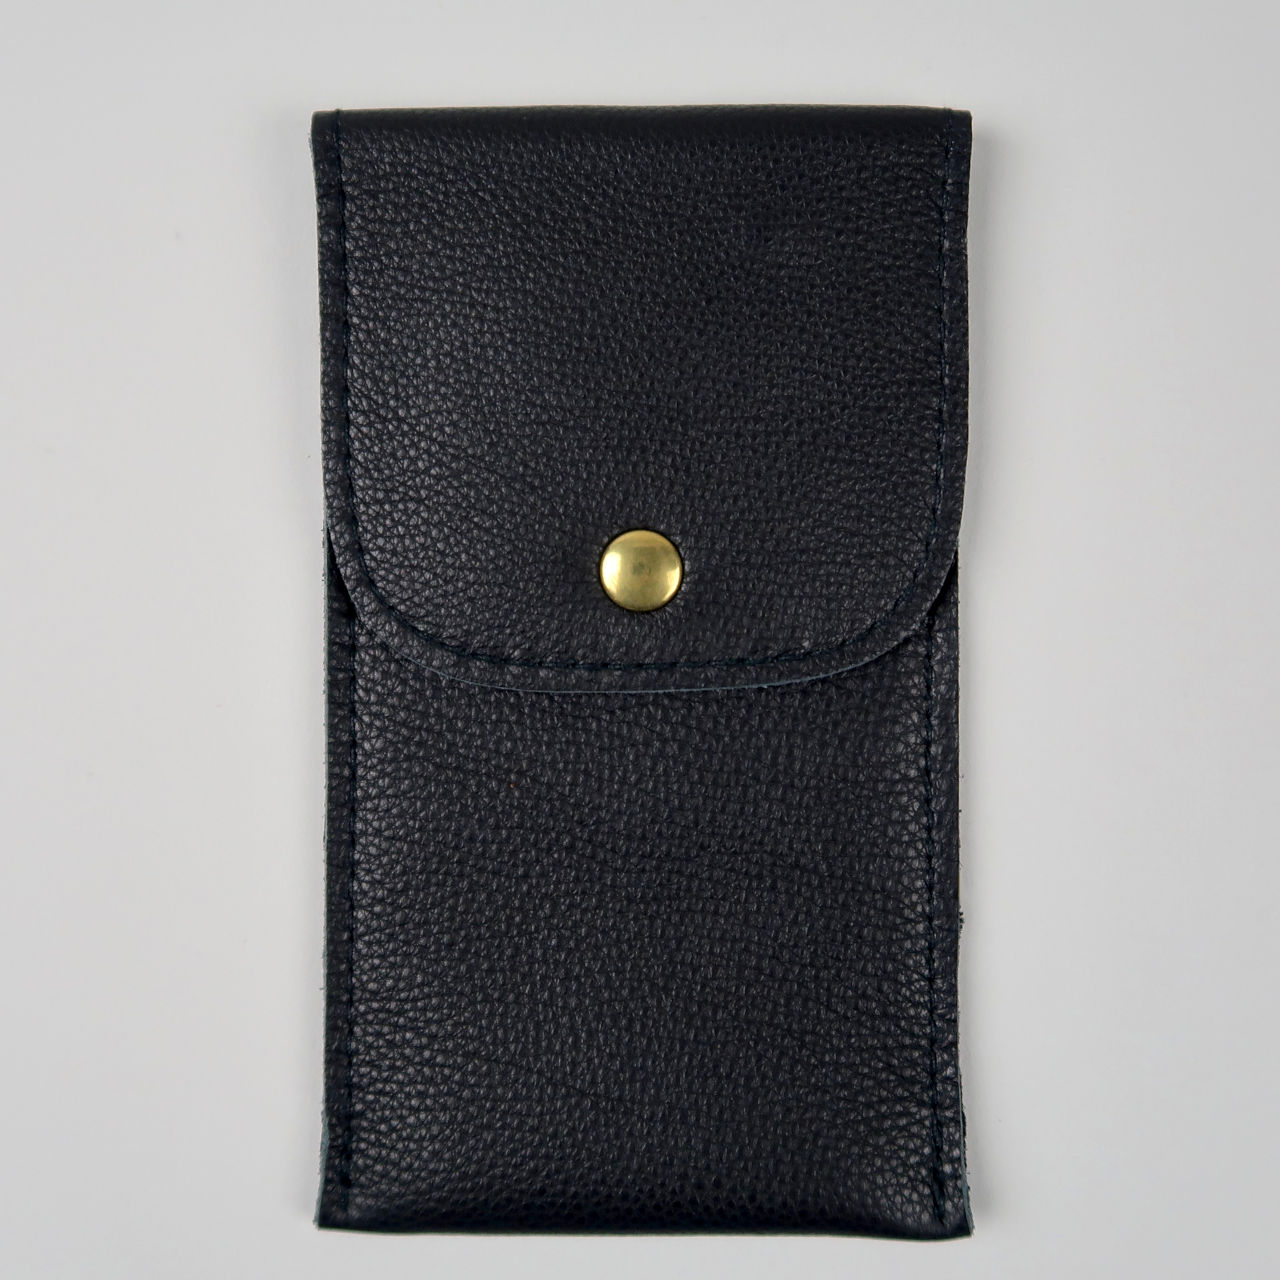 Black leather wristwatch pouch